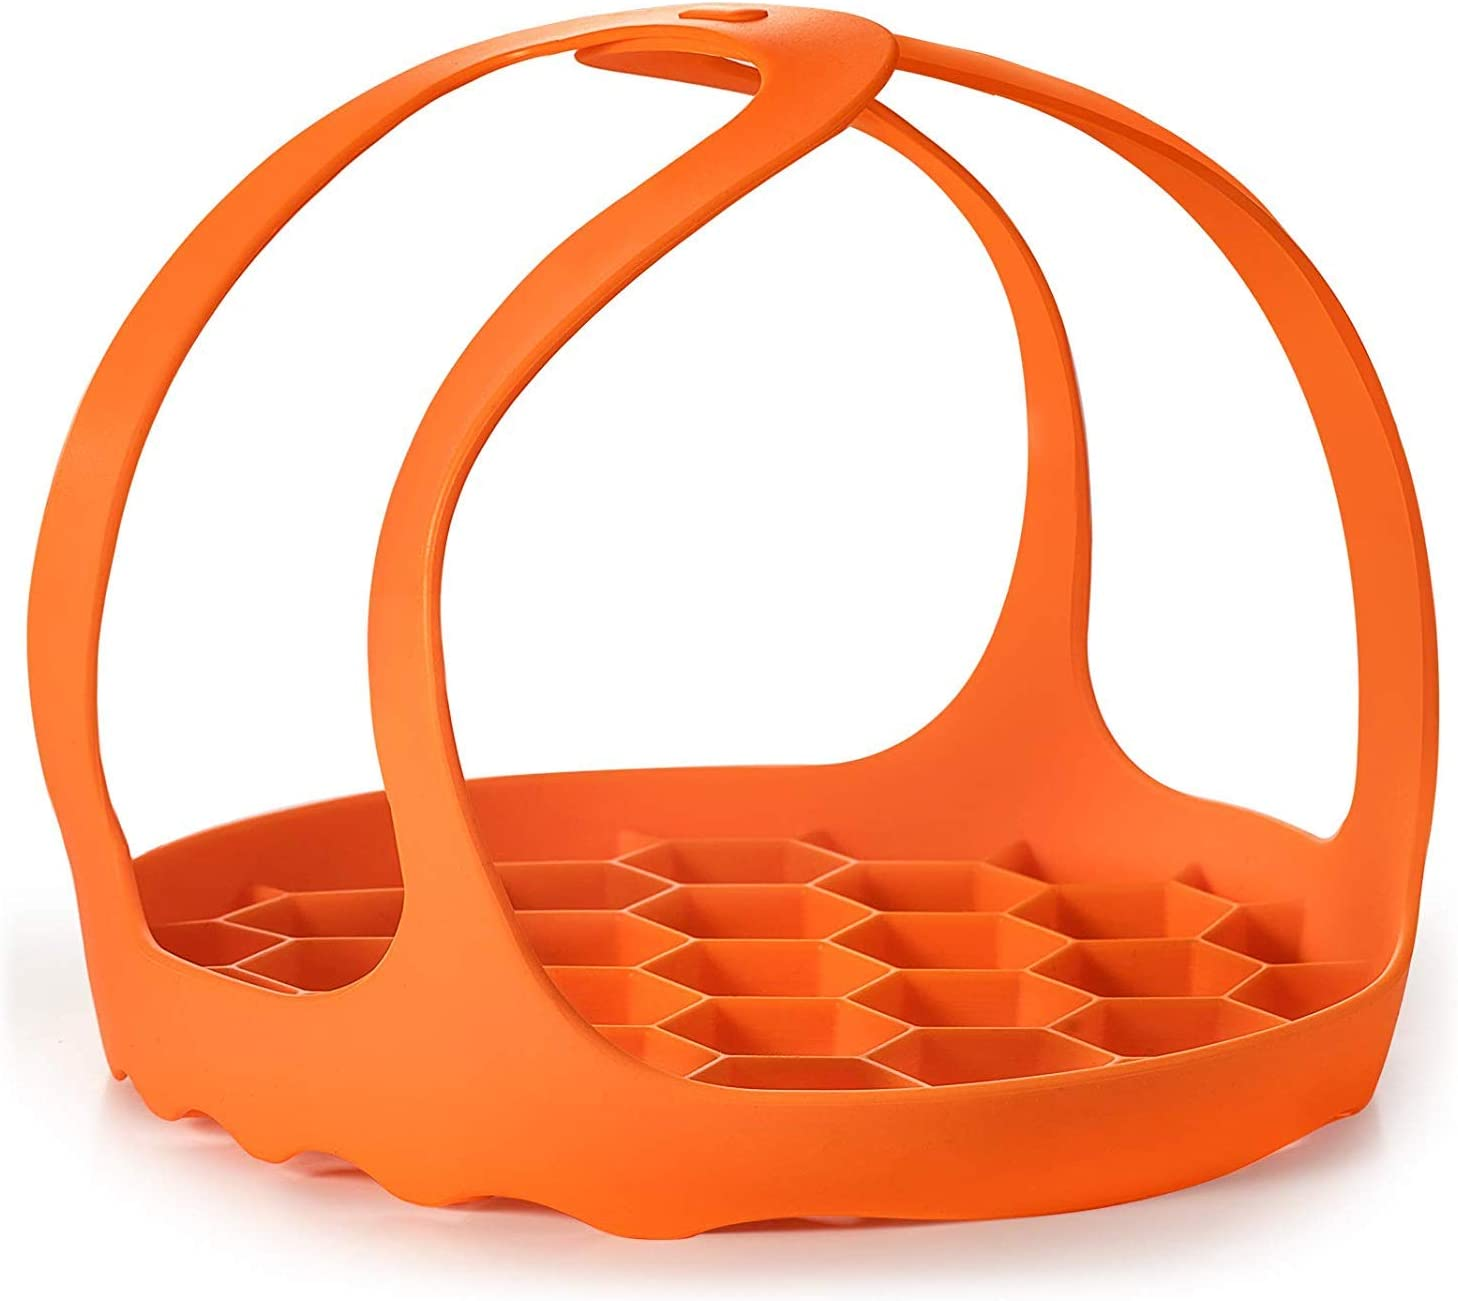 Multi-Function Pressure Cooker Sling - Silicone Bakeware Sling ,Anti-scalding Steamer Rack Lifter Accessories Compatible with Instant Pot 6 Qt and 8 Qt (Orange)